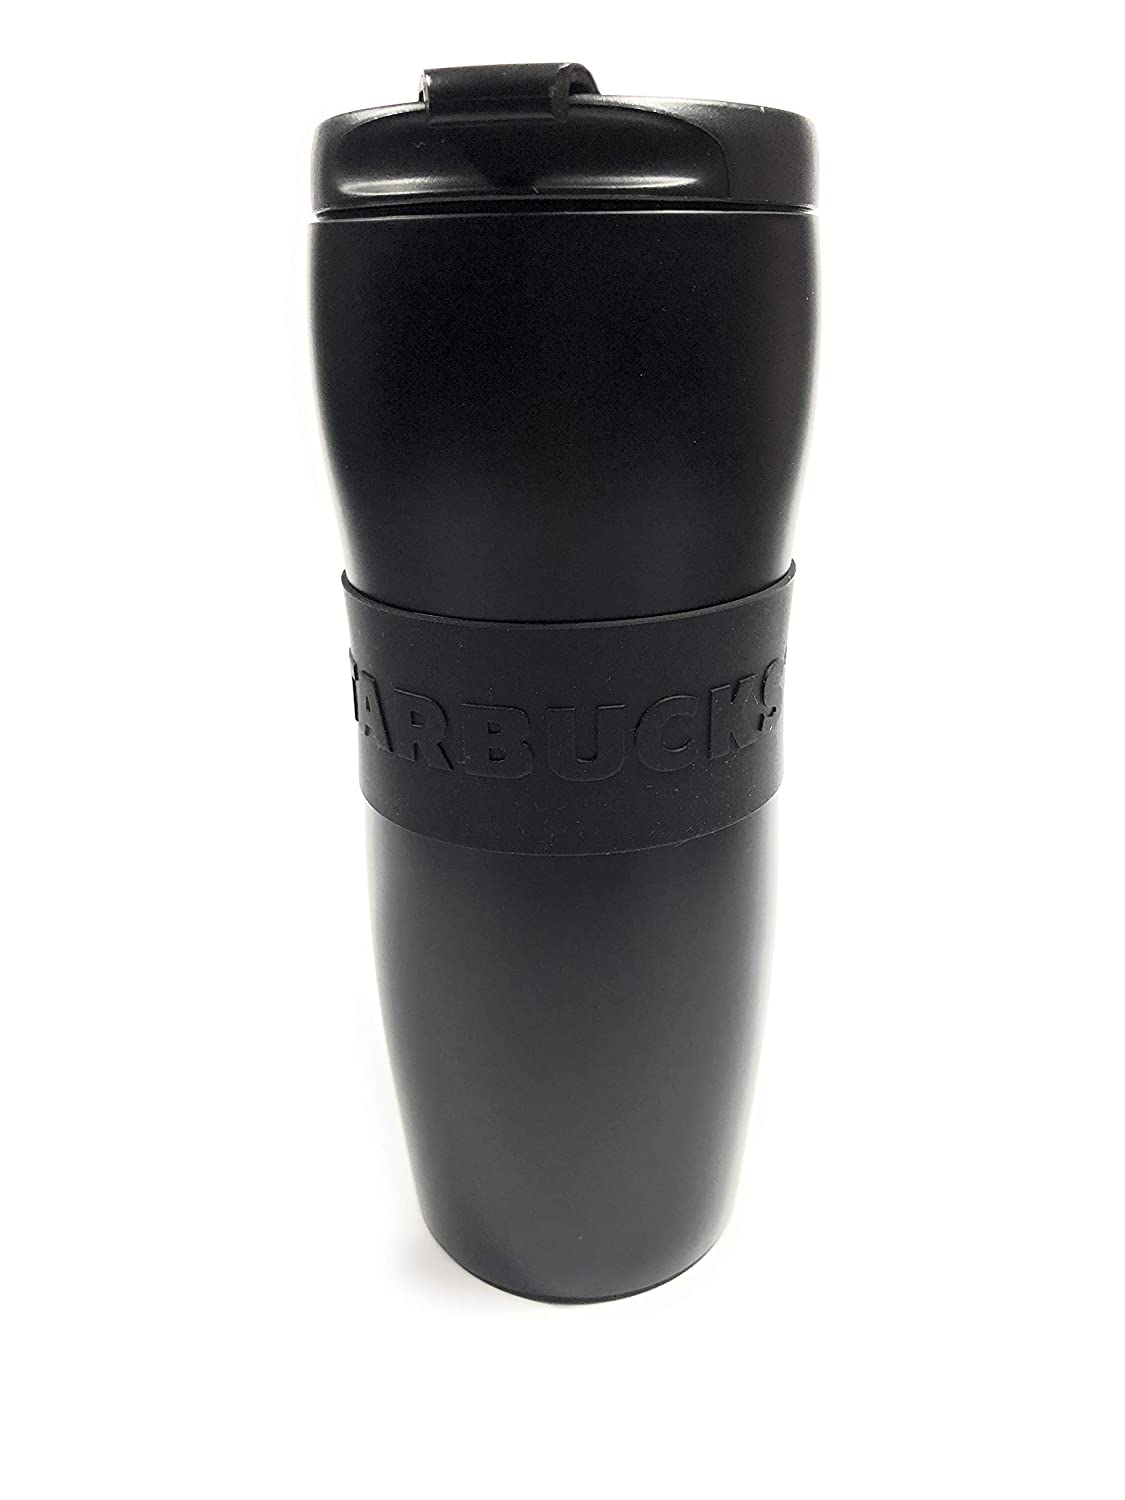 Starbucks Stainless Steel lucy tumbler thermos - matte black - 12 ounce